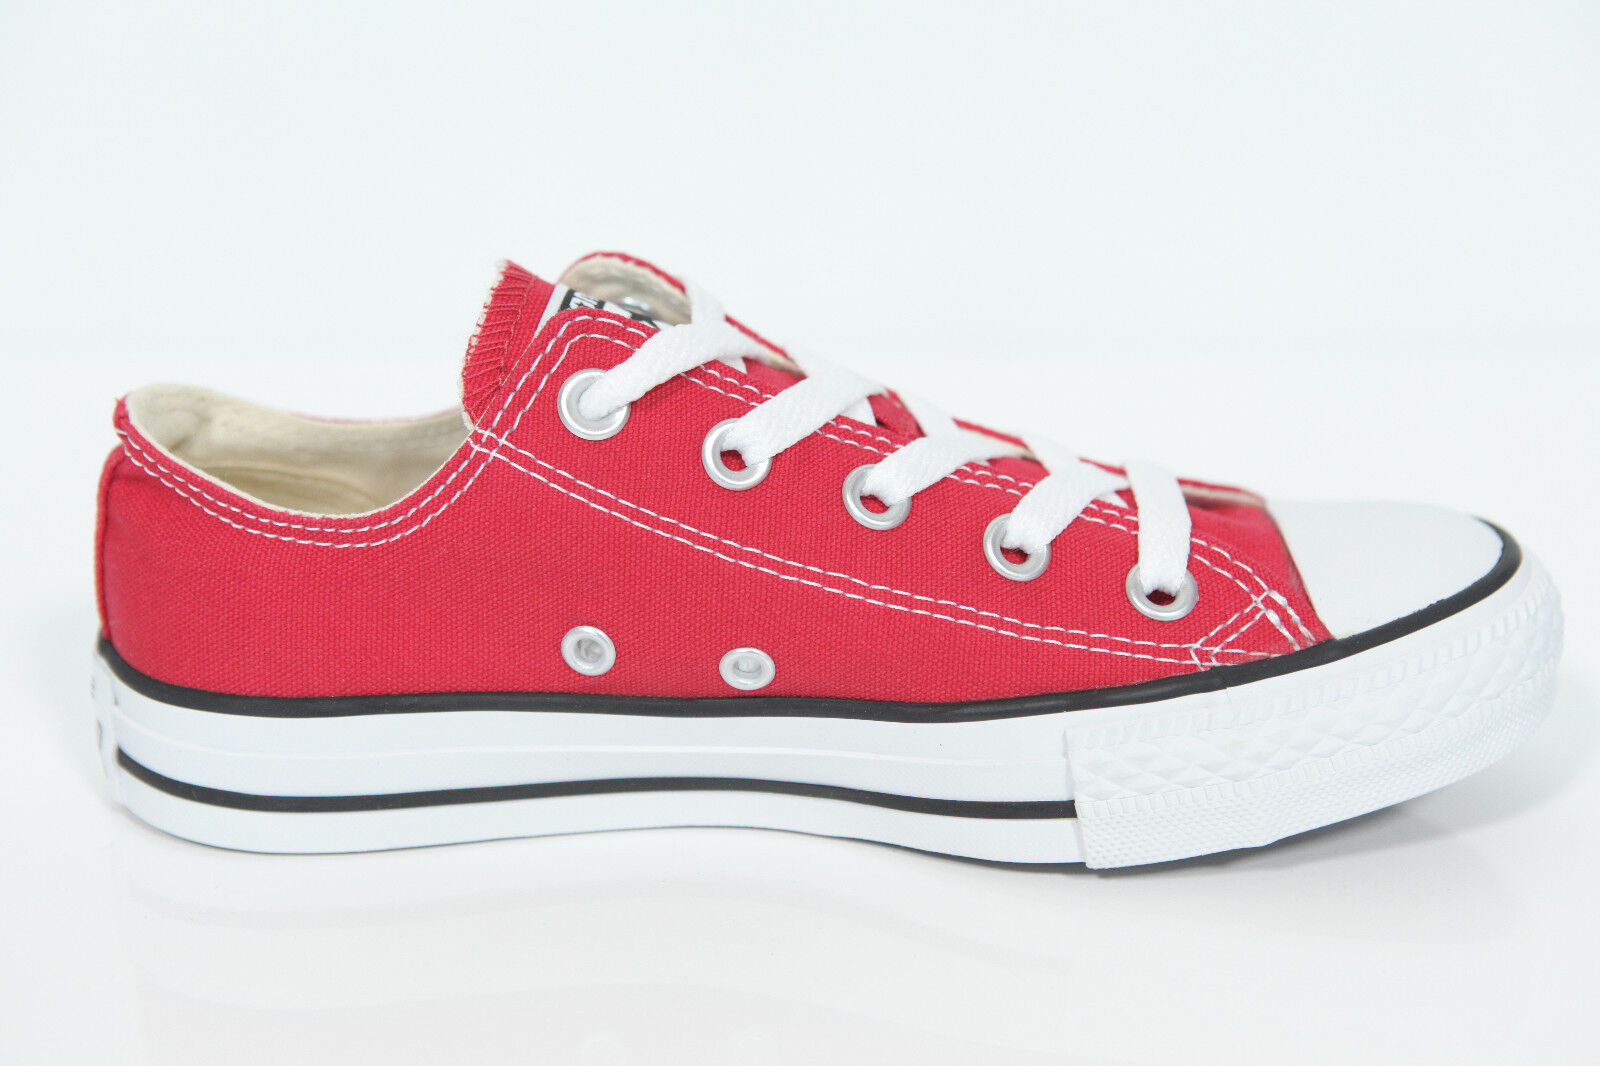 Neu Low All Star Converse Chucks Low Neu Retro Sneaker Zapatos Ox Can Rojo M9696 Retro 99984e